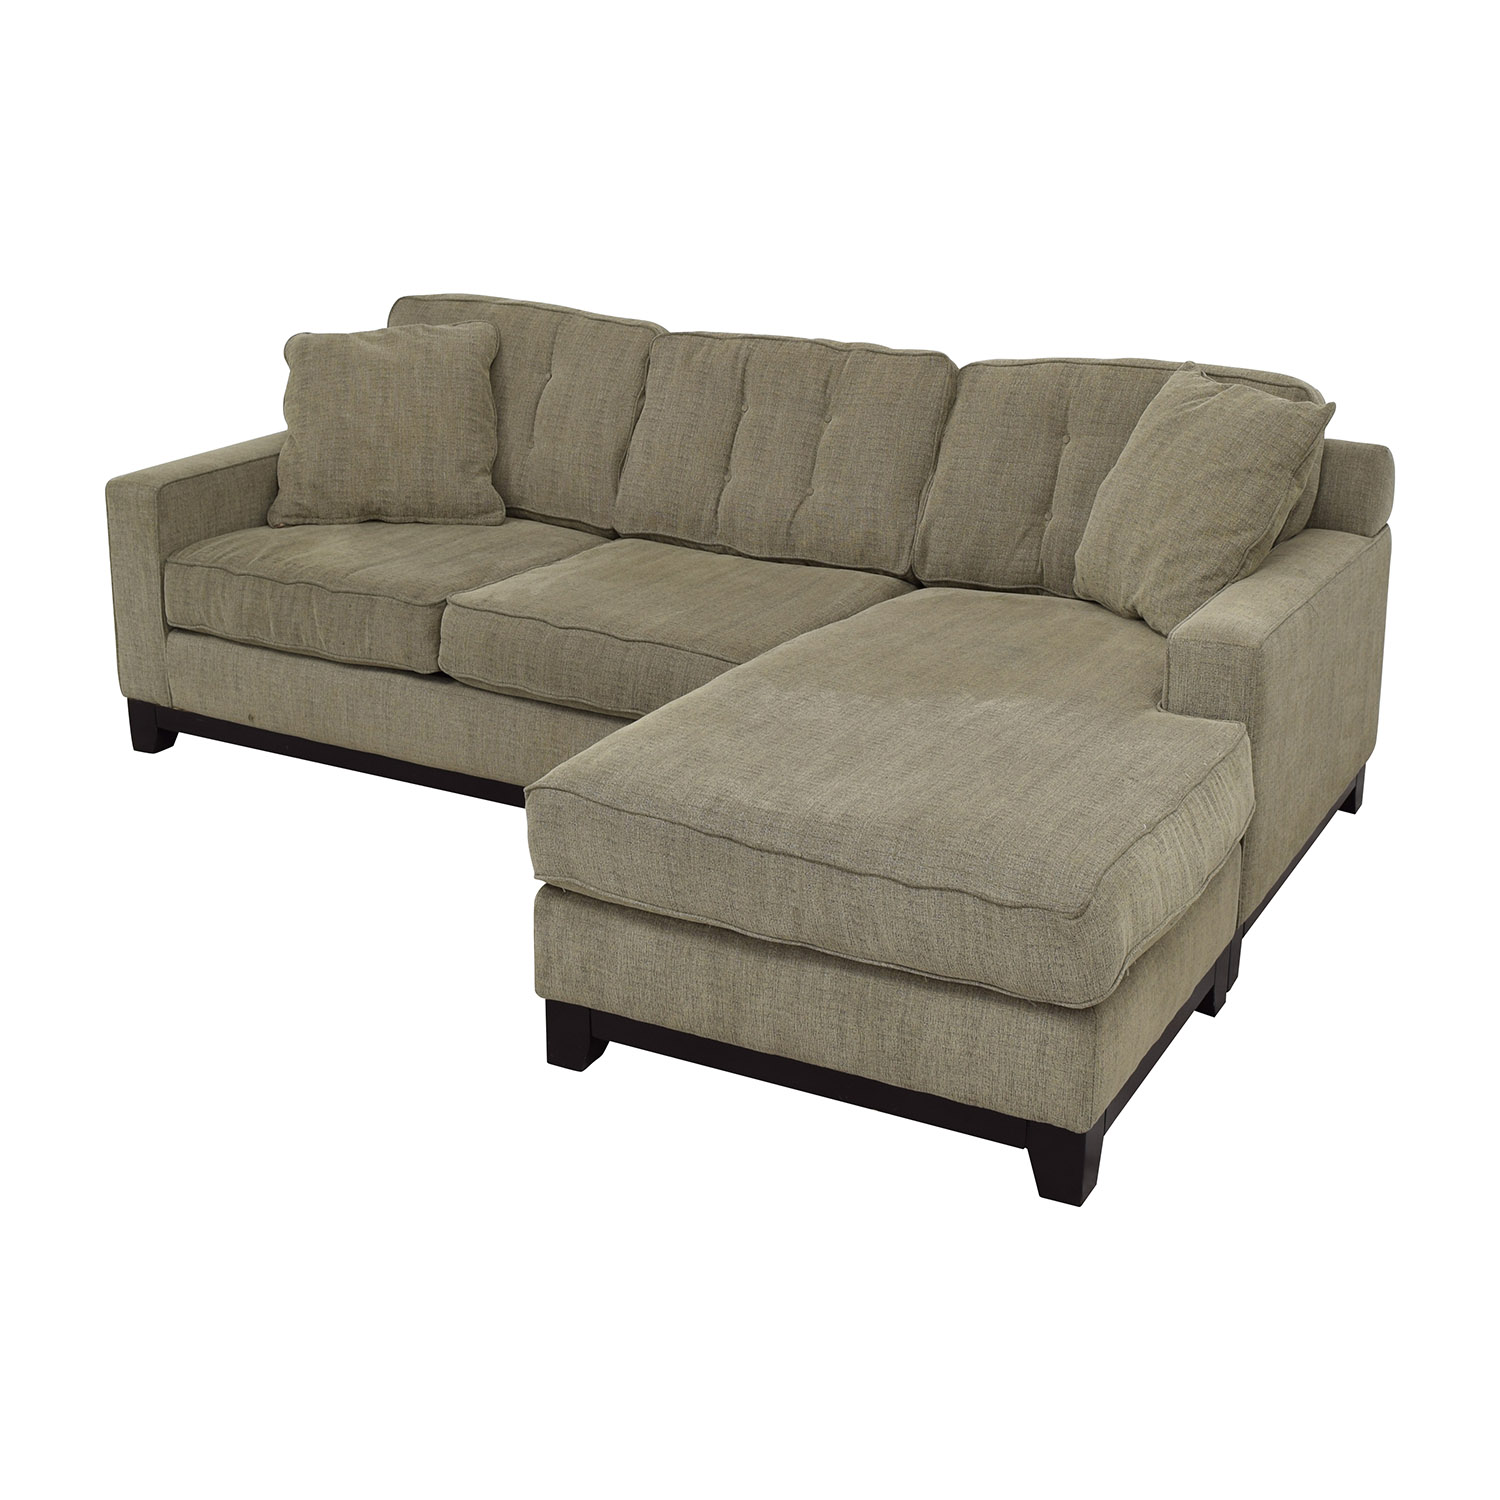 Grey L-Shaped Tufted Sectional with Right Chaise